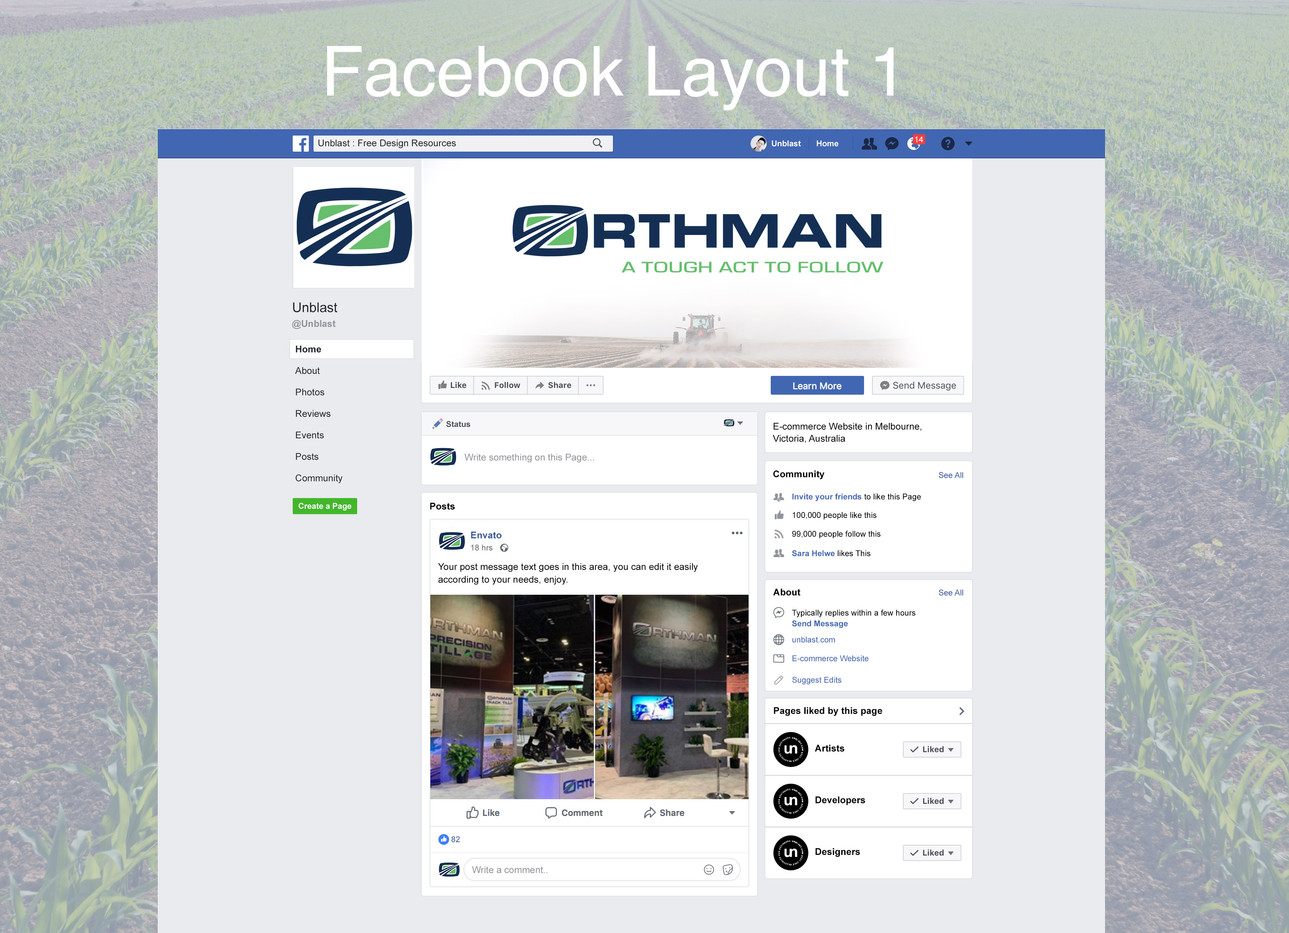 Facebook Layout 1.jpg